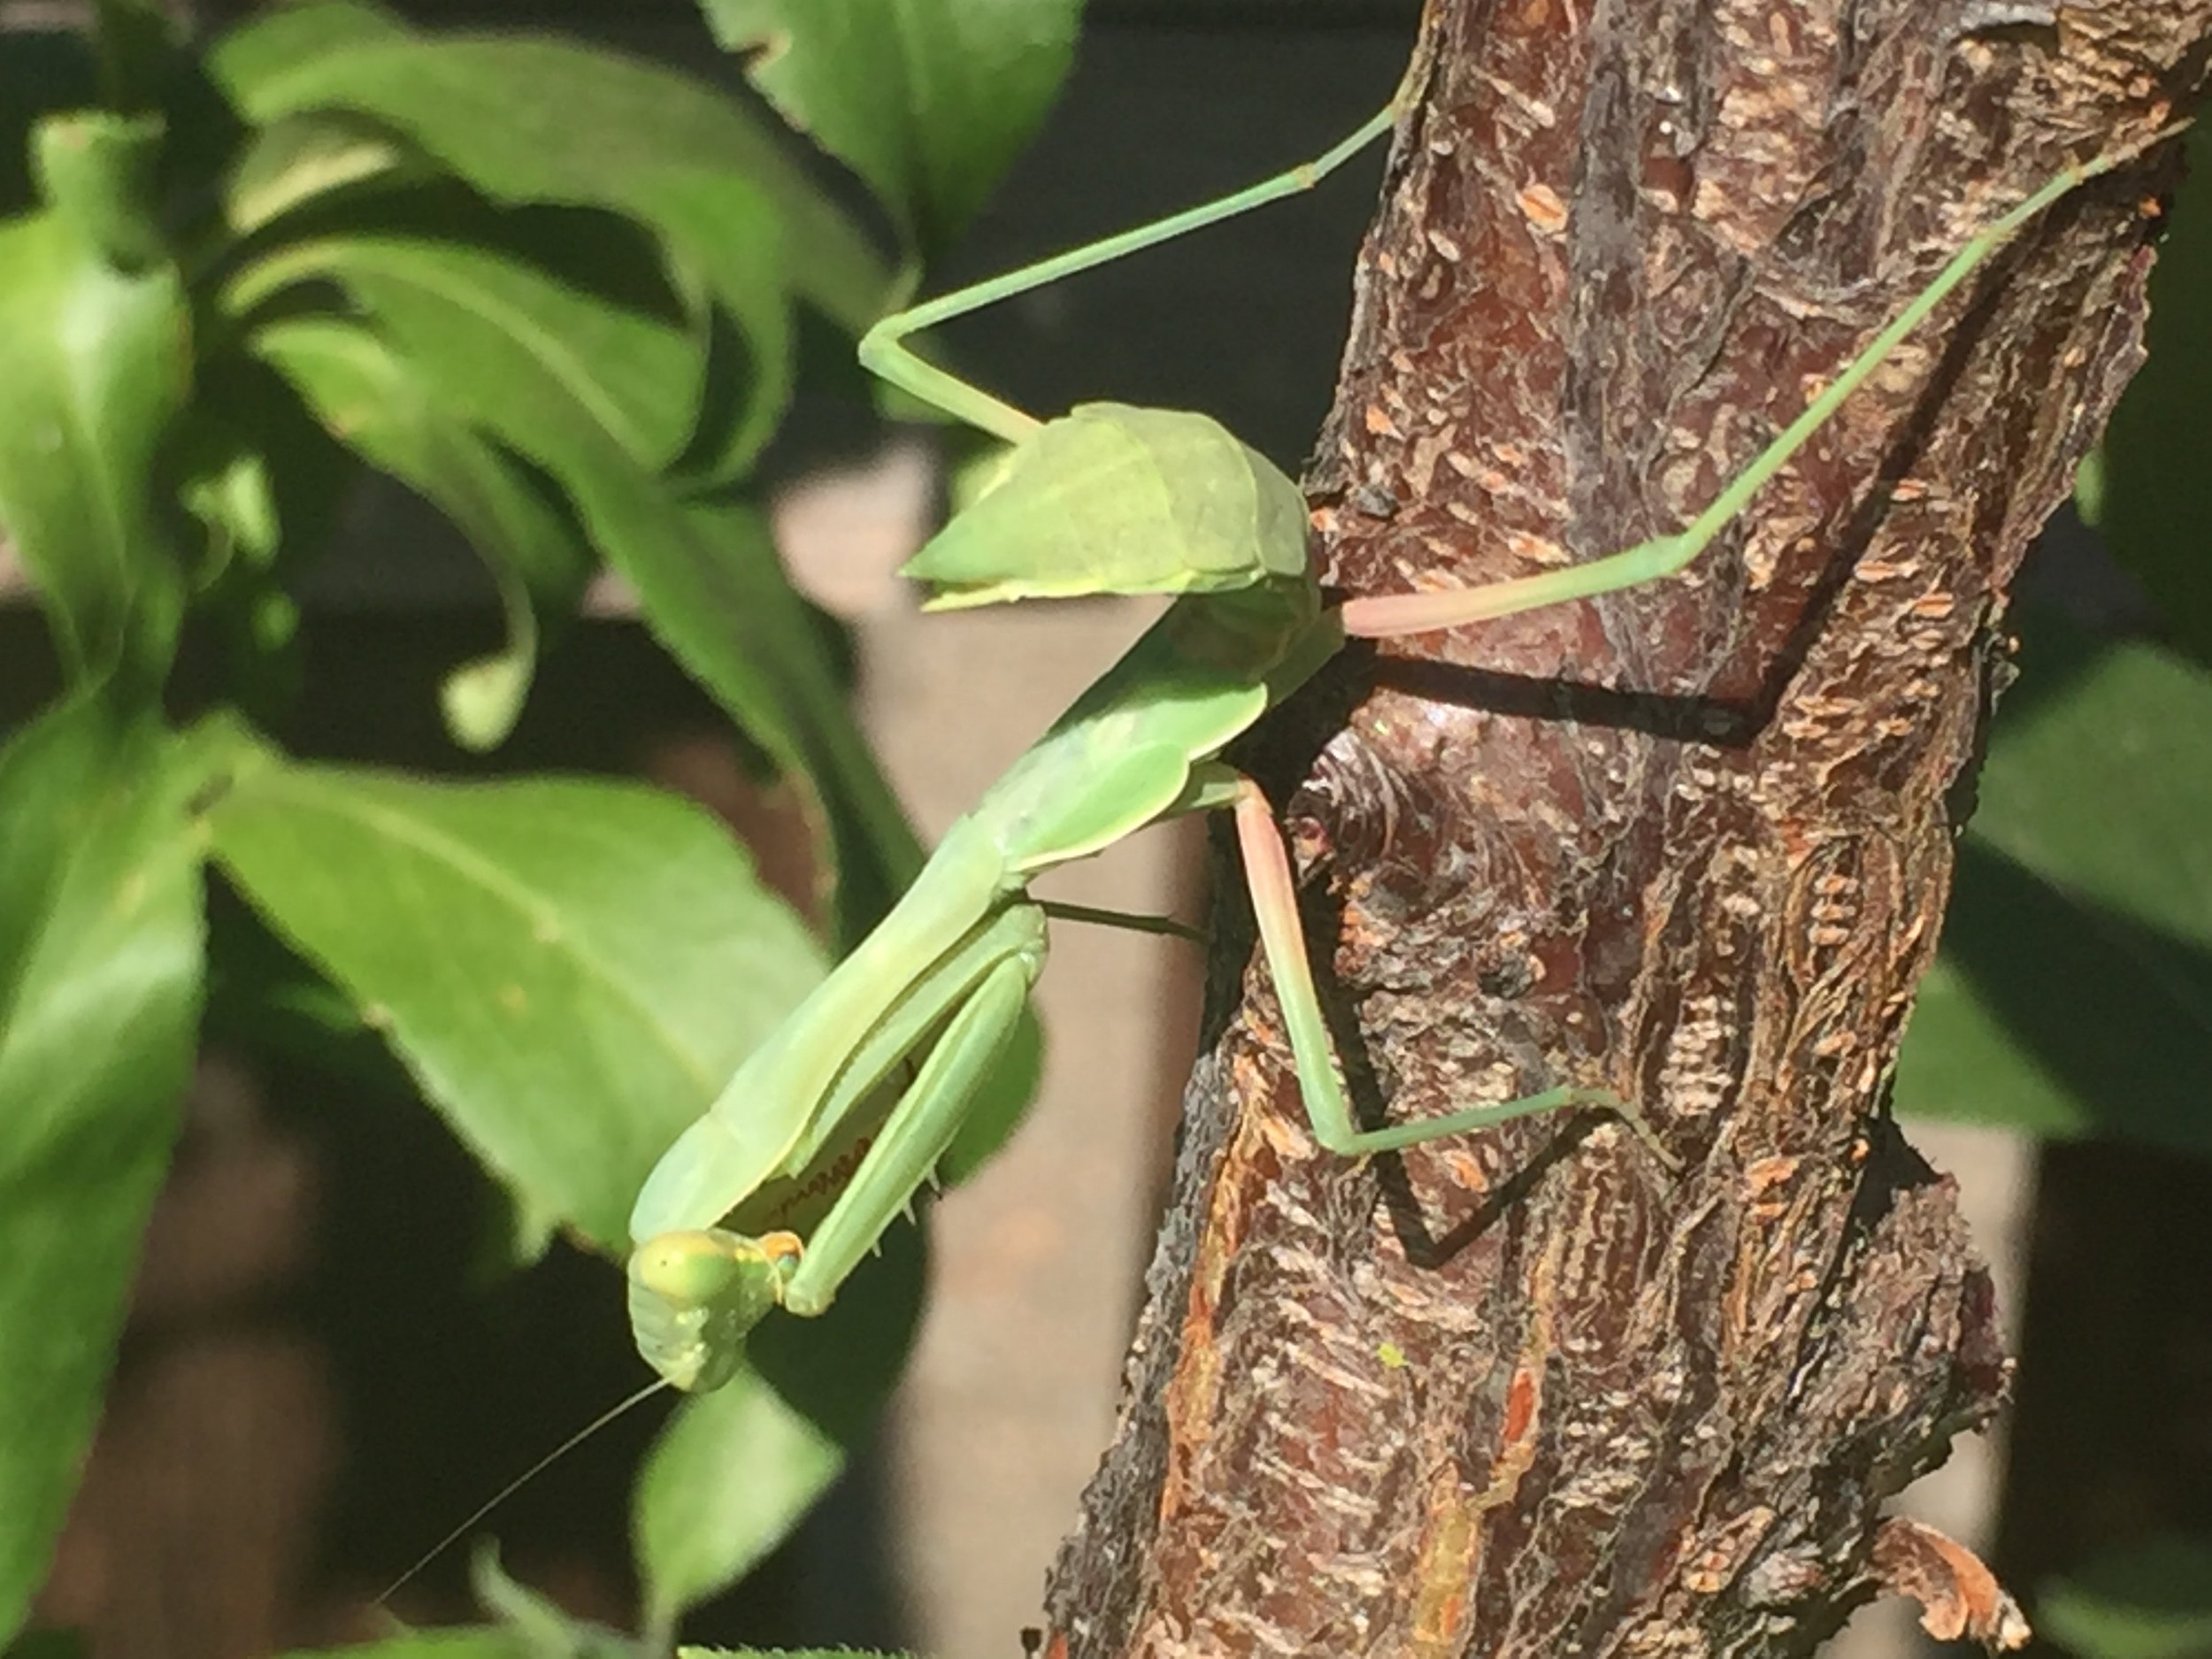 Likely a juvenile female  Stegmomantis californica